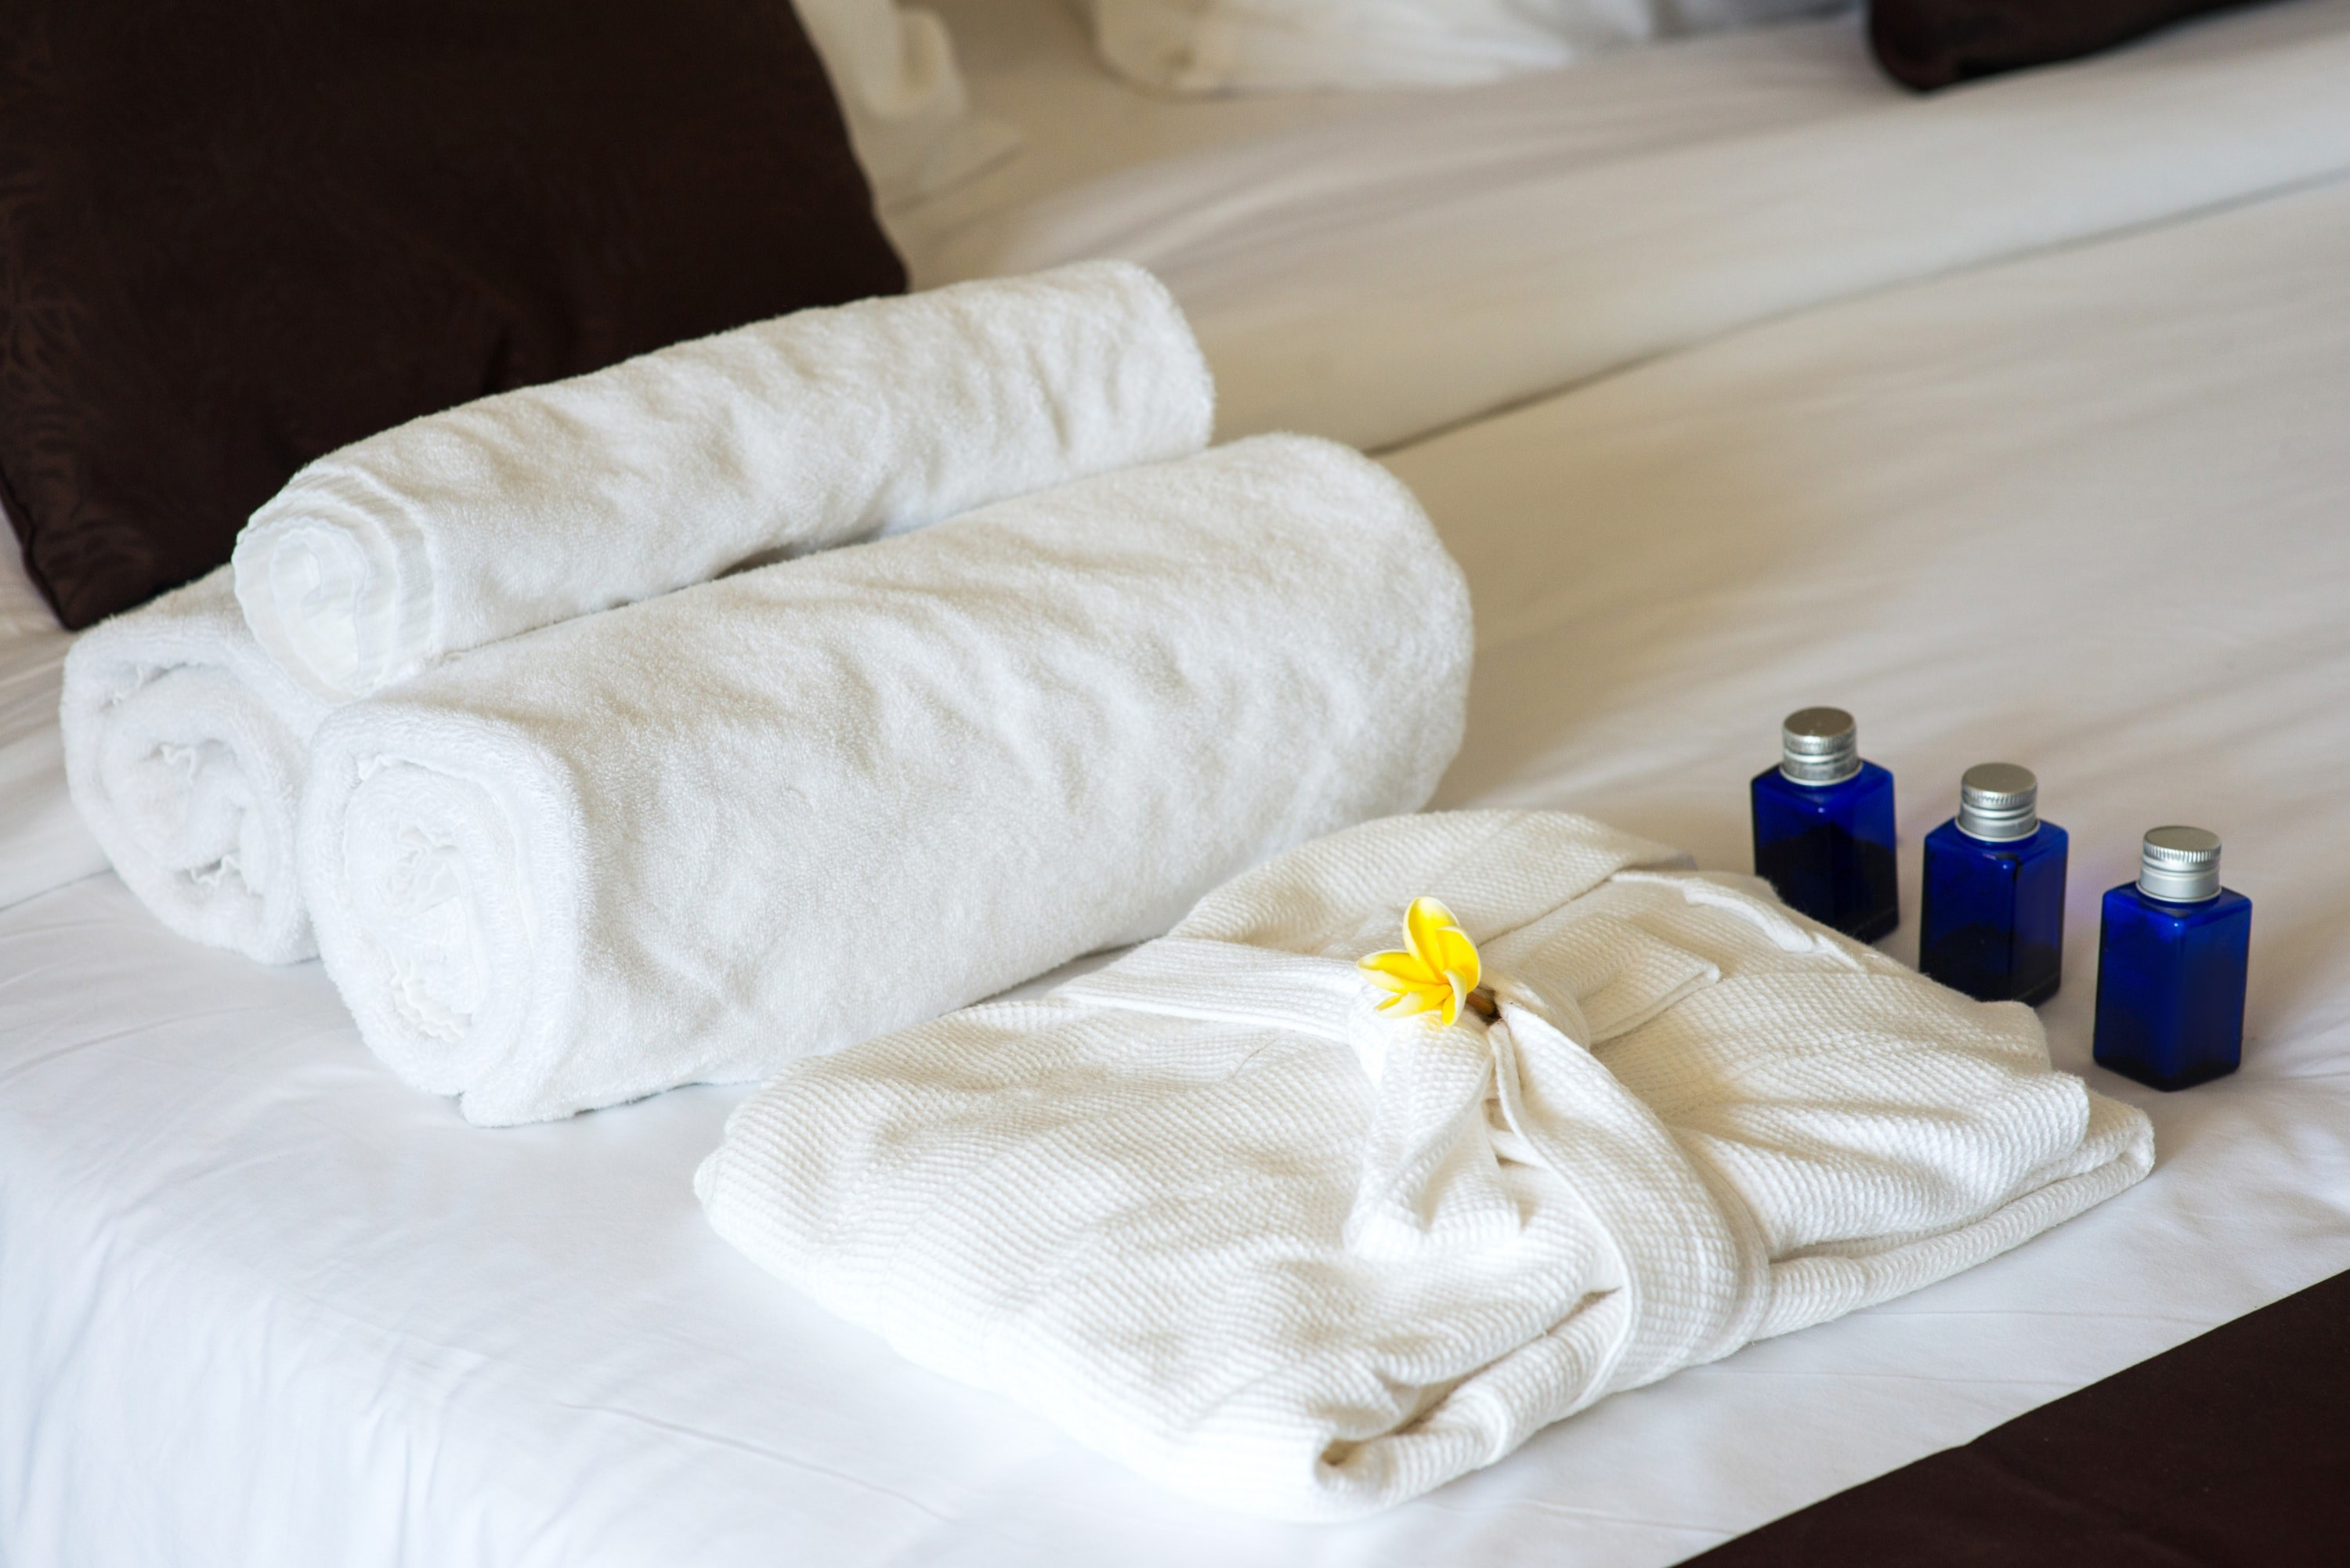 Towels and bedsheets